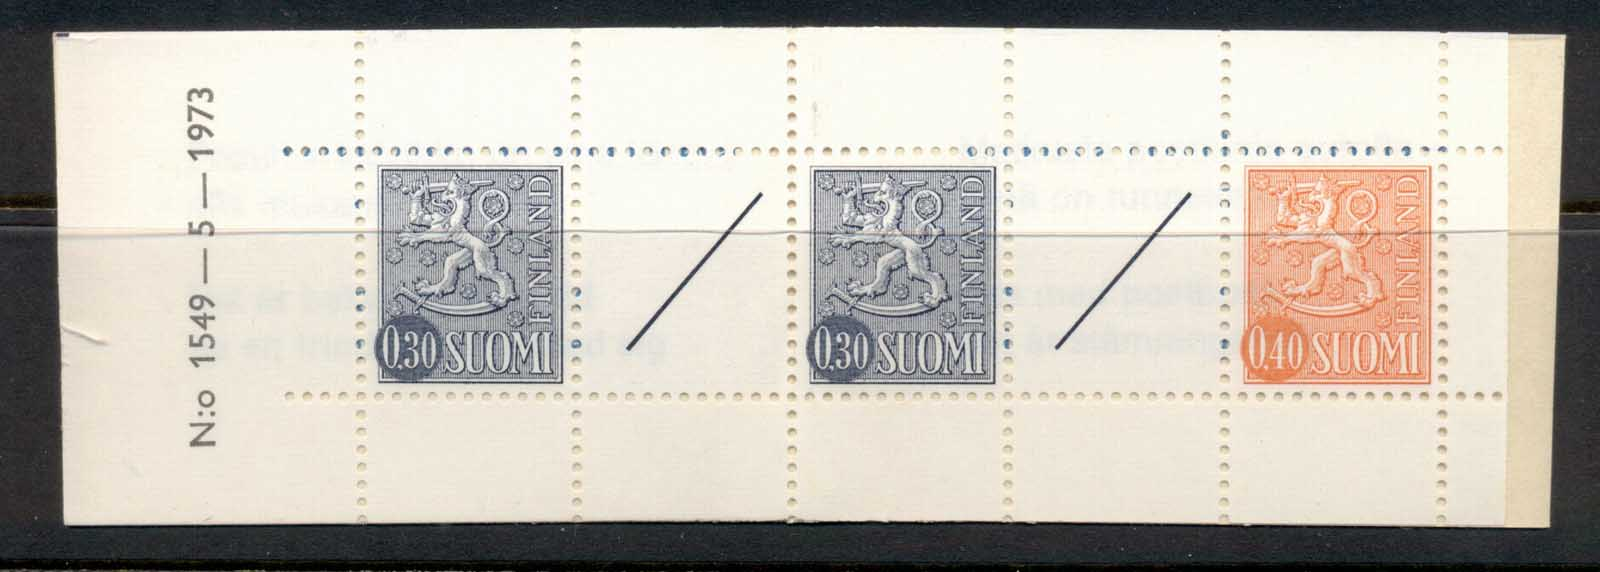 Finland 1968-78 Arms of Finland booklet 2x30, 1x40, 2 labels MUH